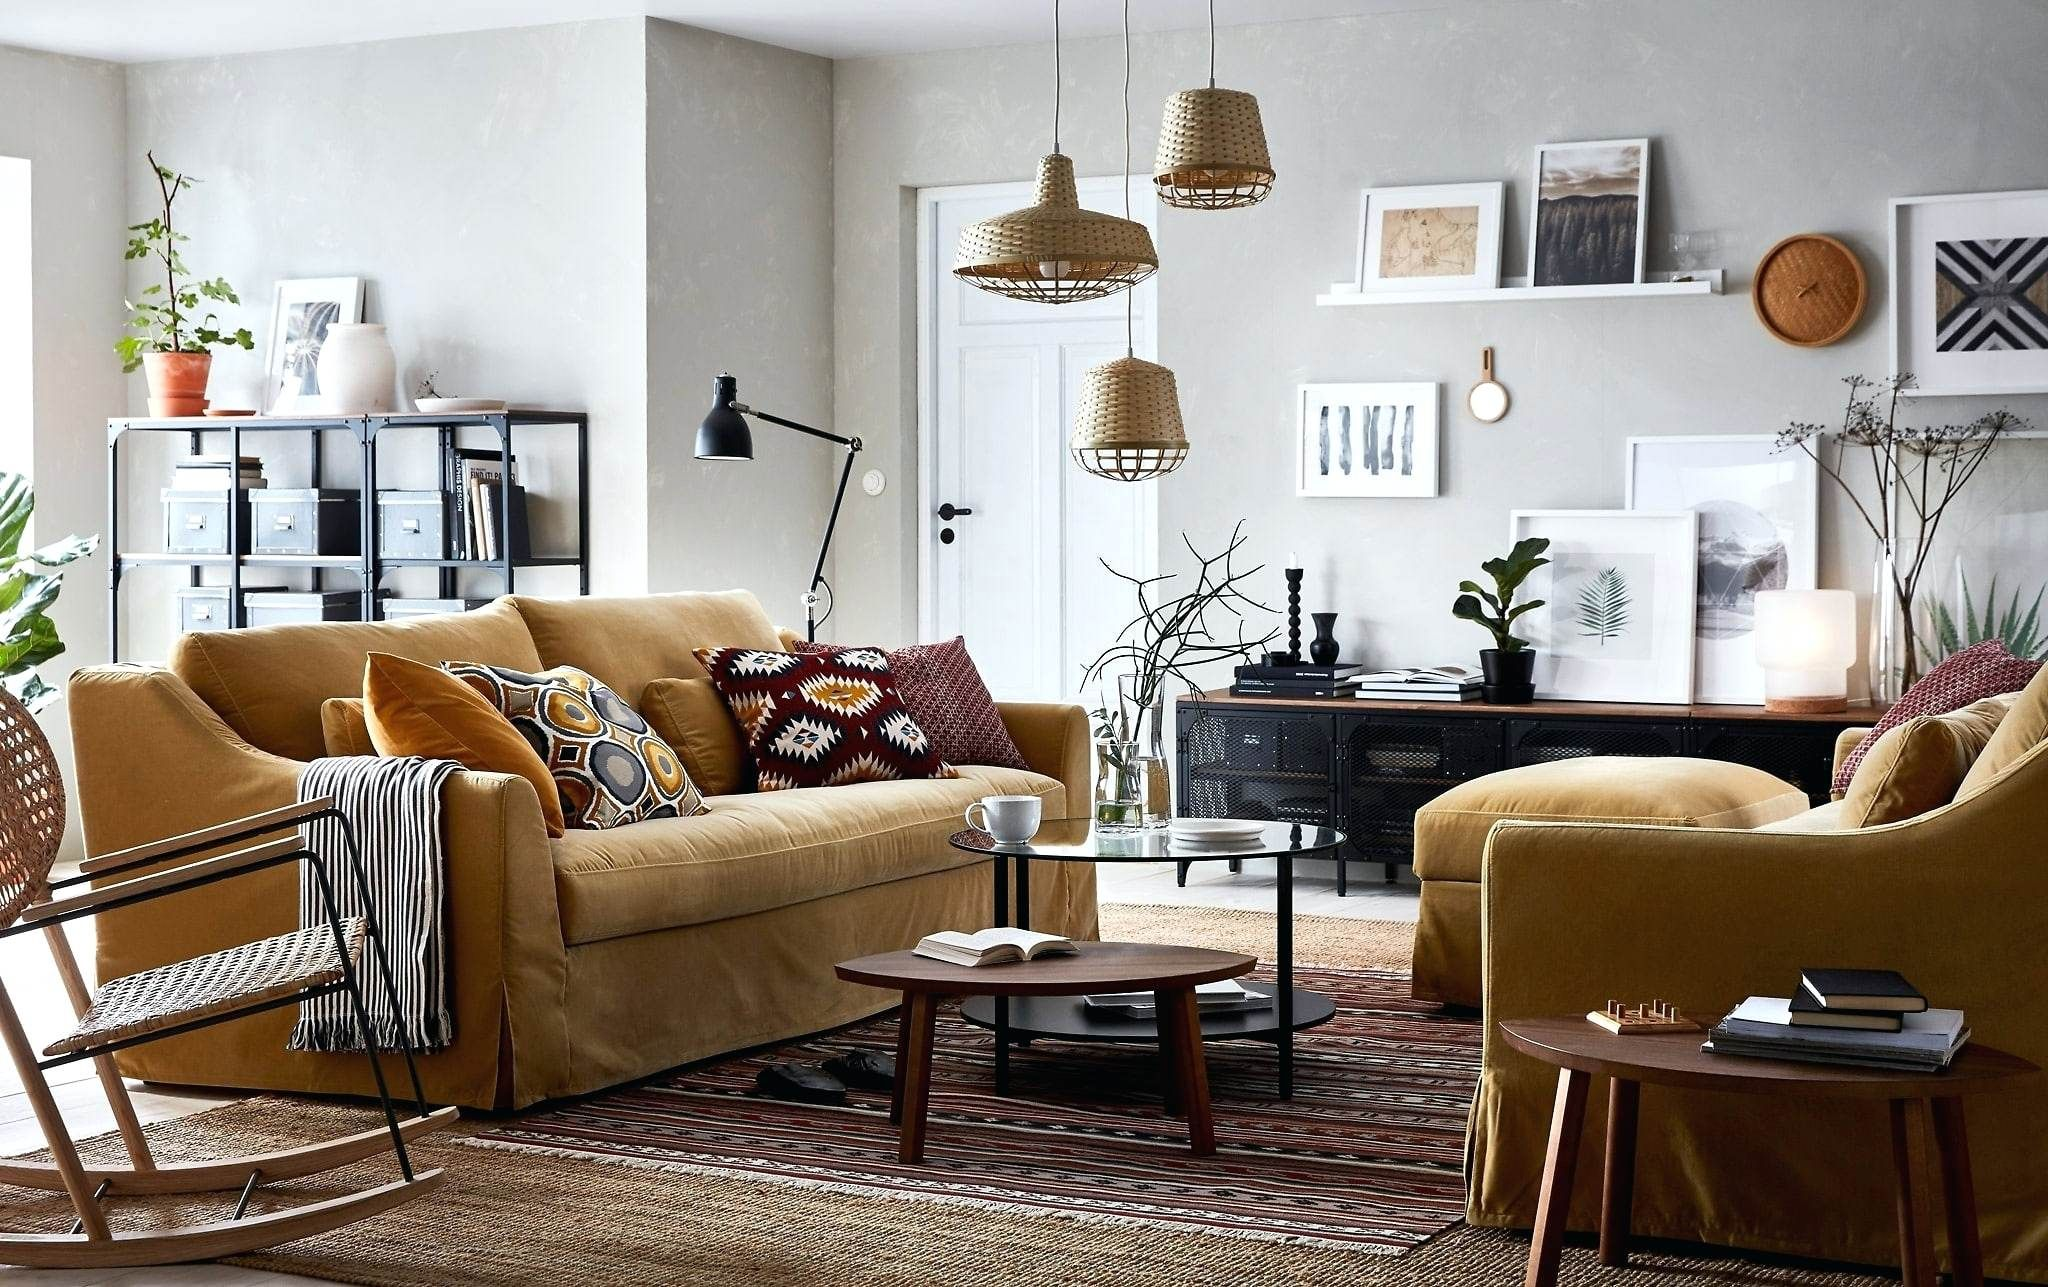 10 Awesome Concepts of How to Upgrade Ikea Living Room ...